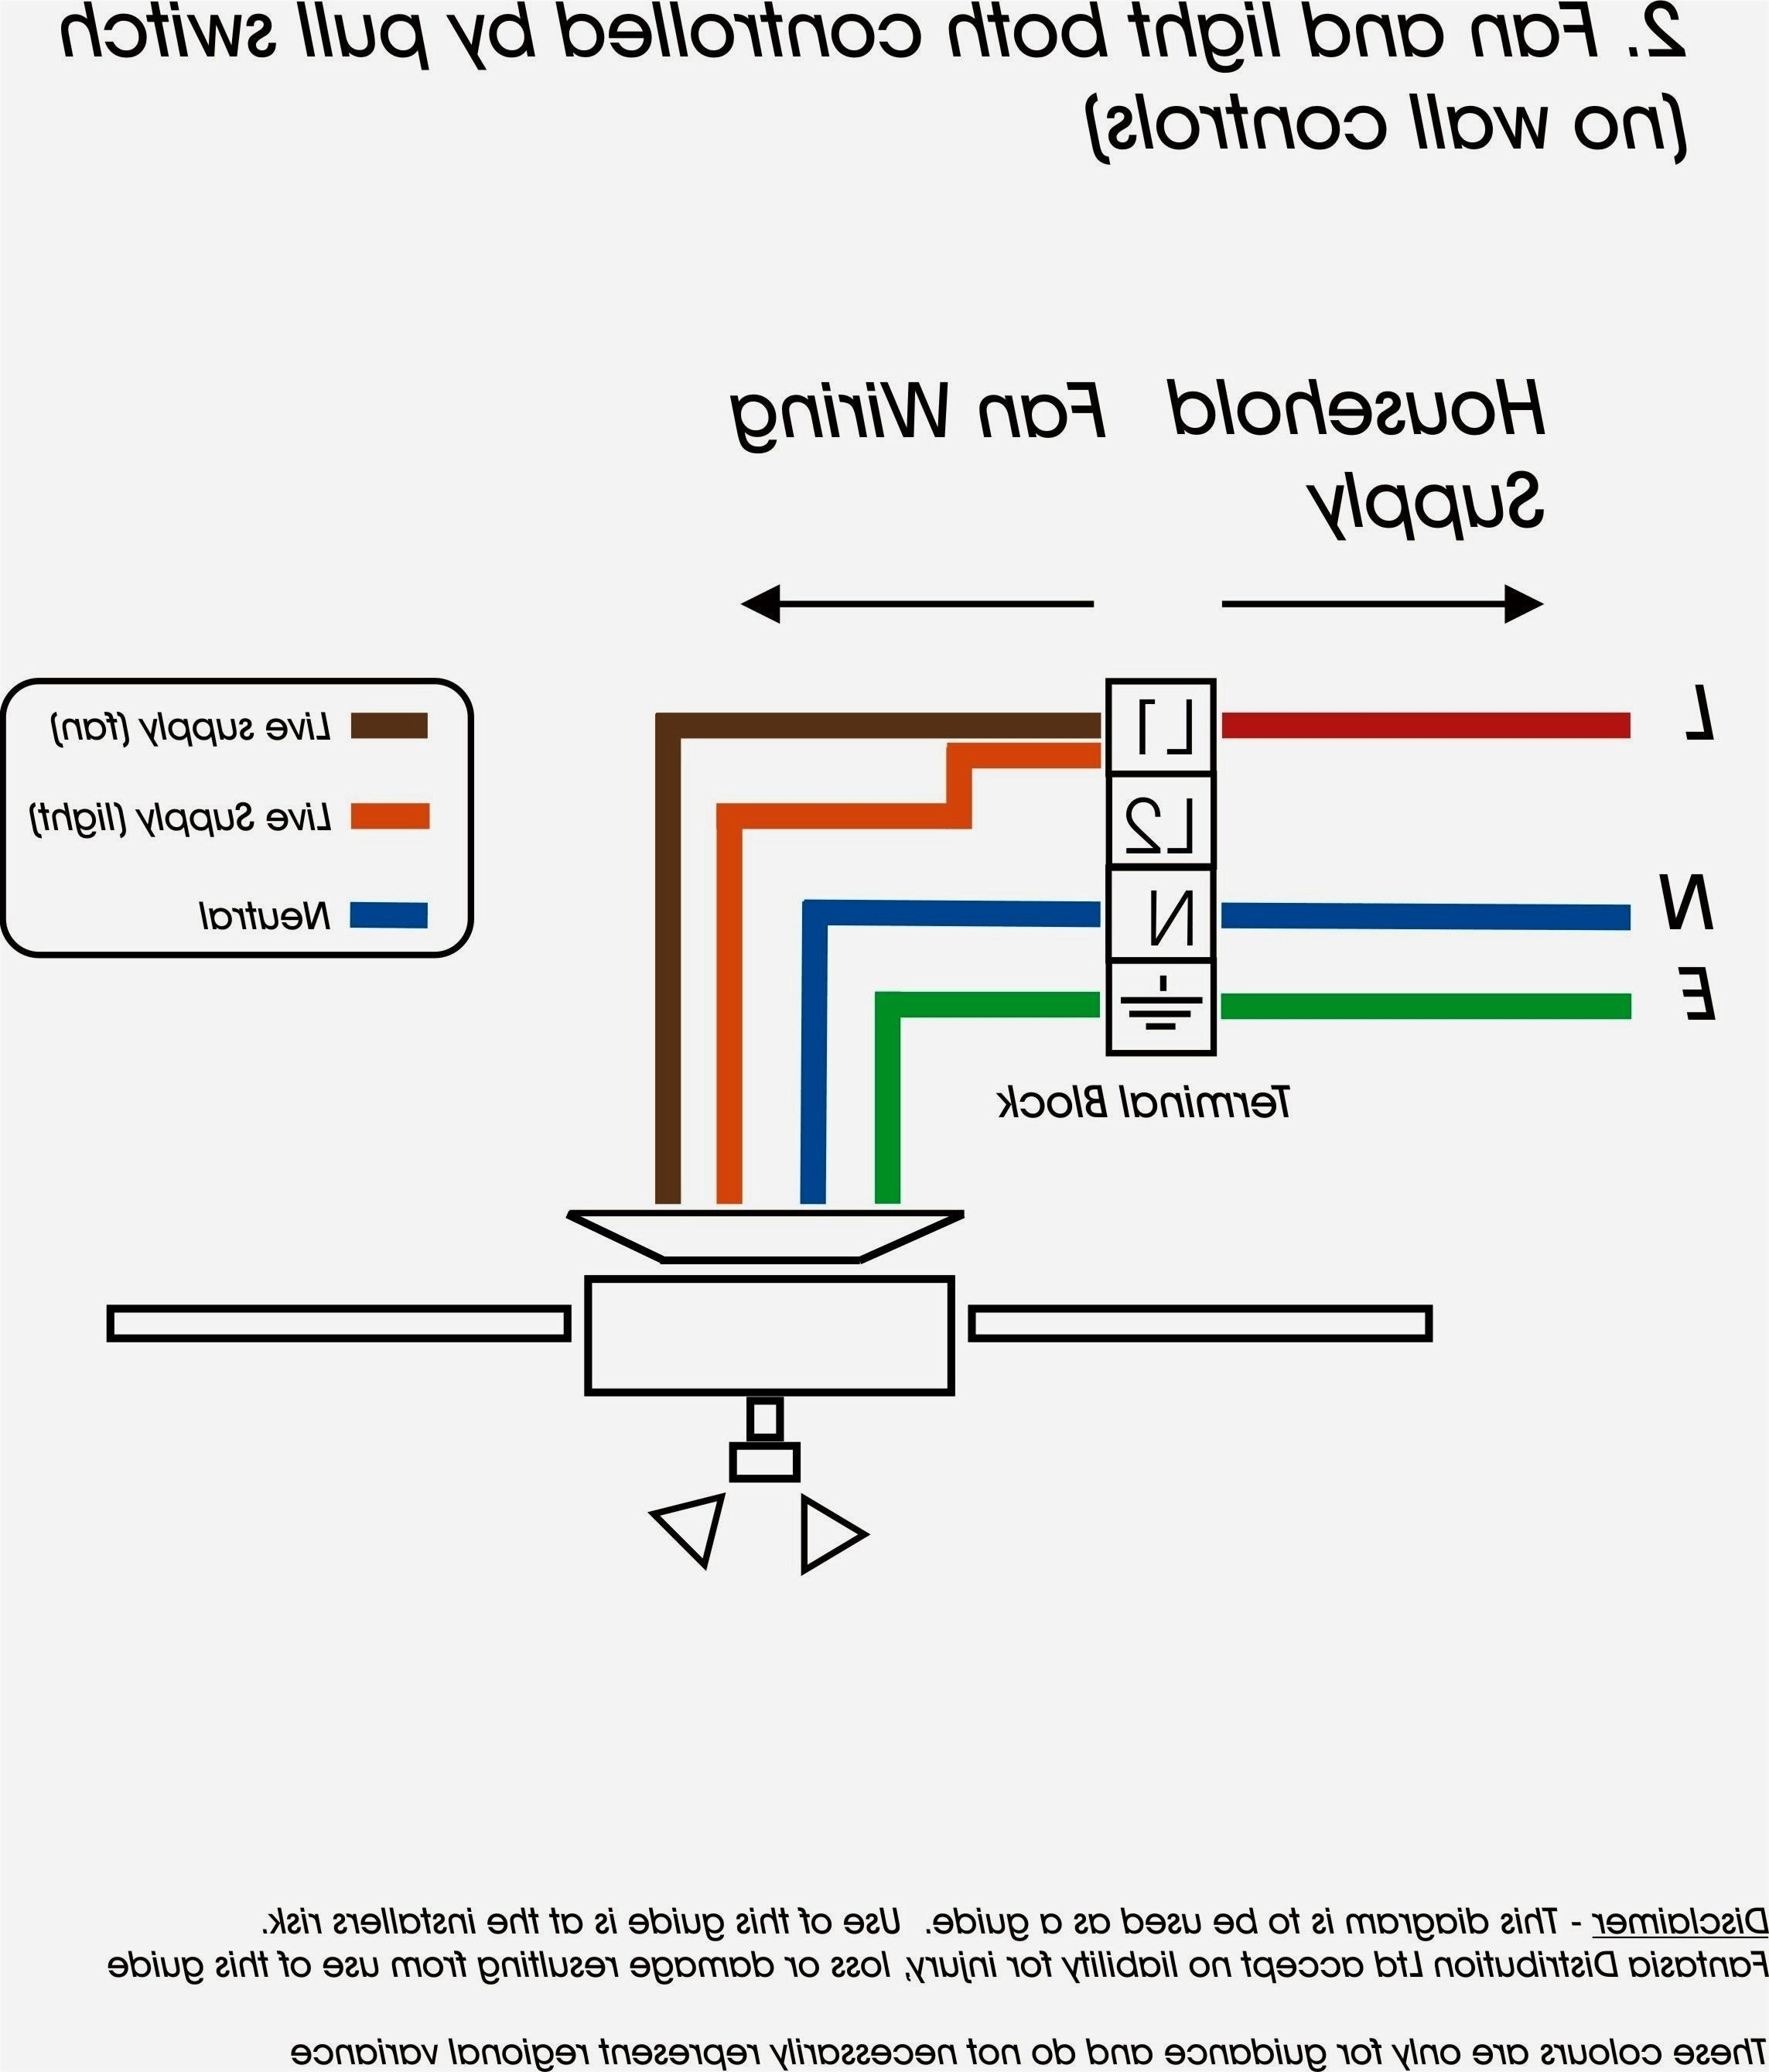 ethernet cable wiring diagram cat5e Download-Cat5e Wiring Diagram Australia Save Valid Ethernet Cable Wiring Diagram Australia 12-a